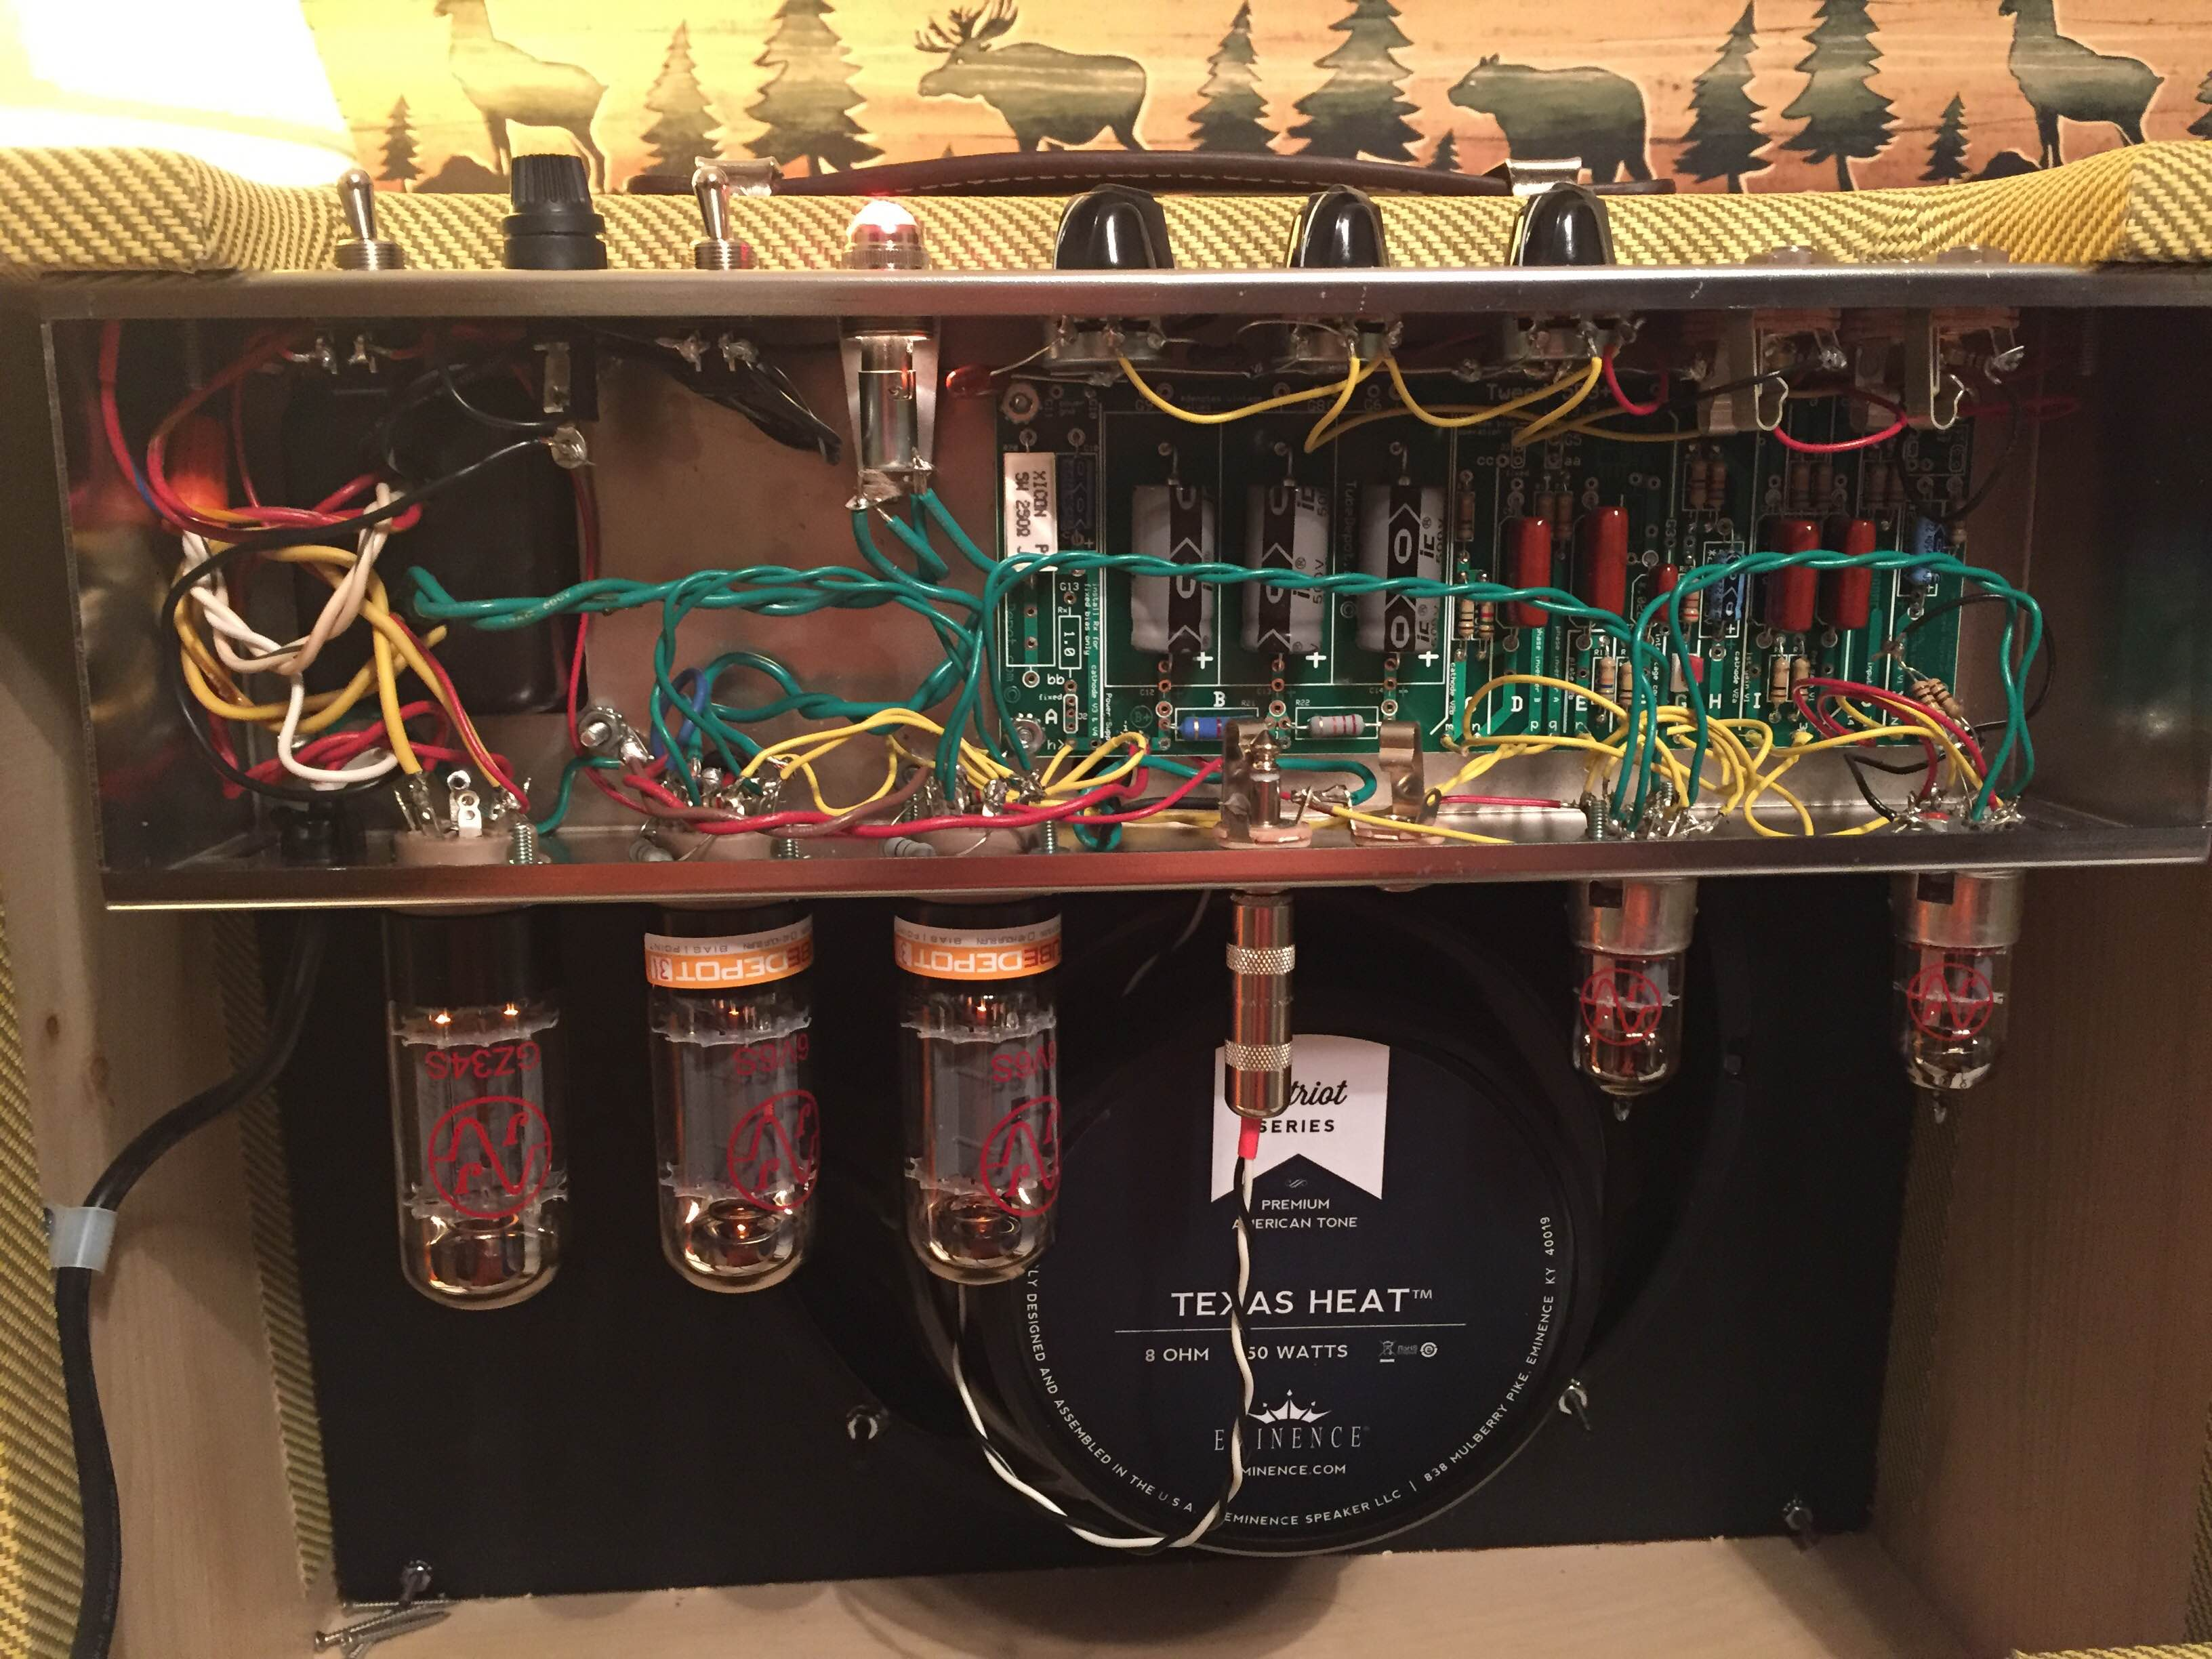 Welcome To Doityourself How Make A Circuit Board Guitar Pick Do It Build Him One If He Bought The Kit So I Might Get Again Thanks For Putting These Kits Together Jeff B Buy This Tweed 5e3 Vacuum Tube Amp